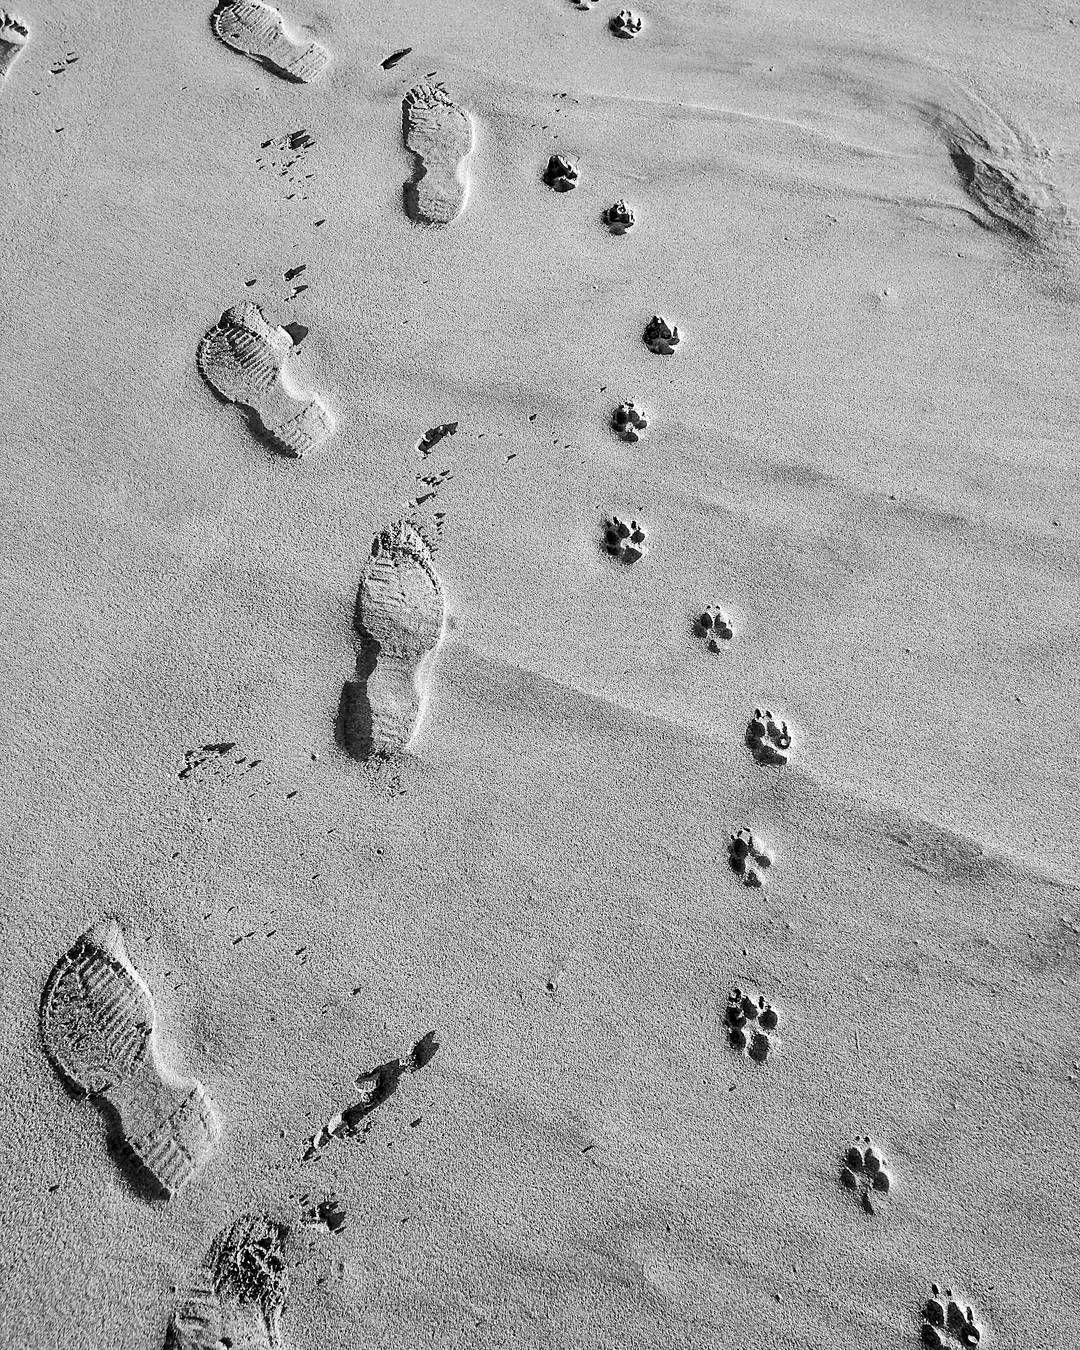 Walking the beach with my best friend. #paws #beach #footprints #sand #pawprints